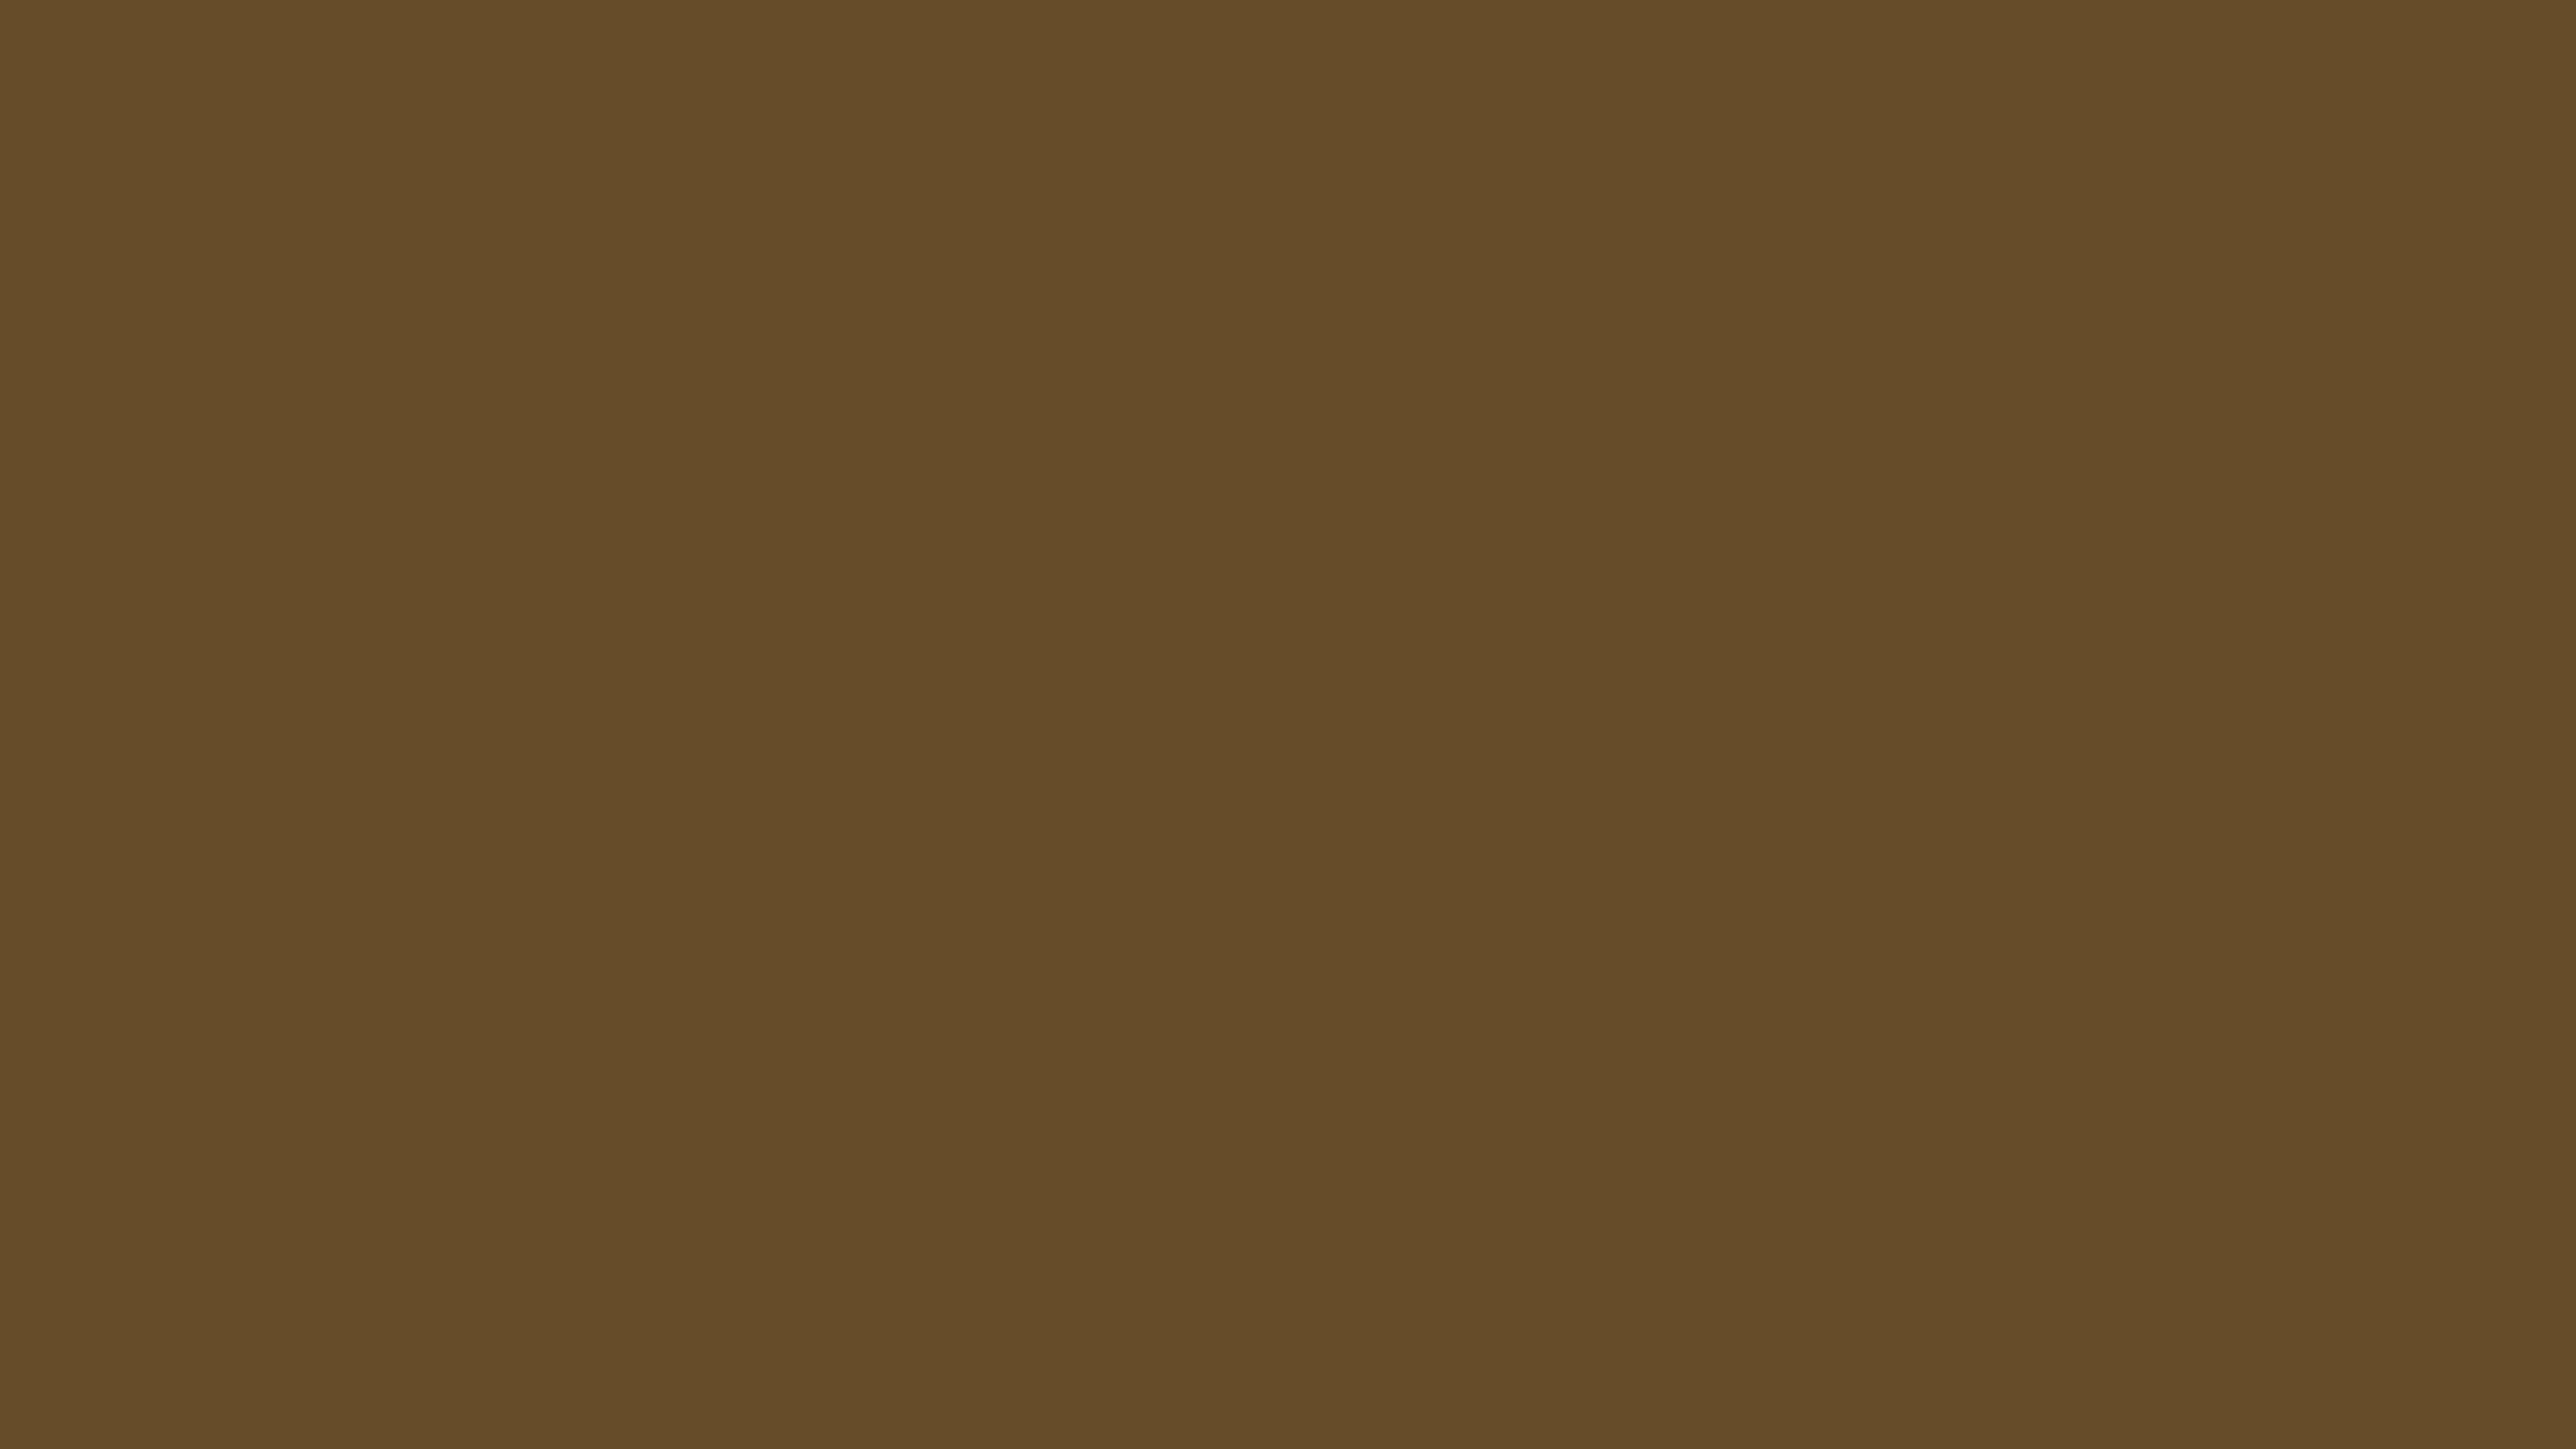 3840x2160 Donkey Brown Solid Color Background 3840x2160